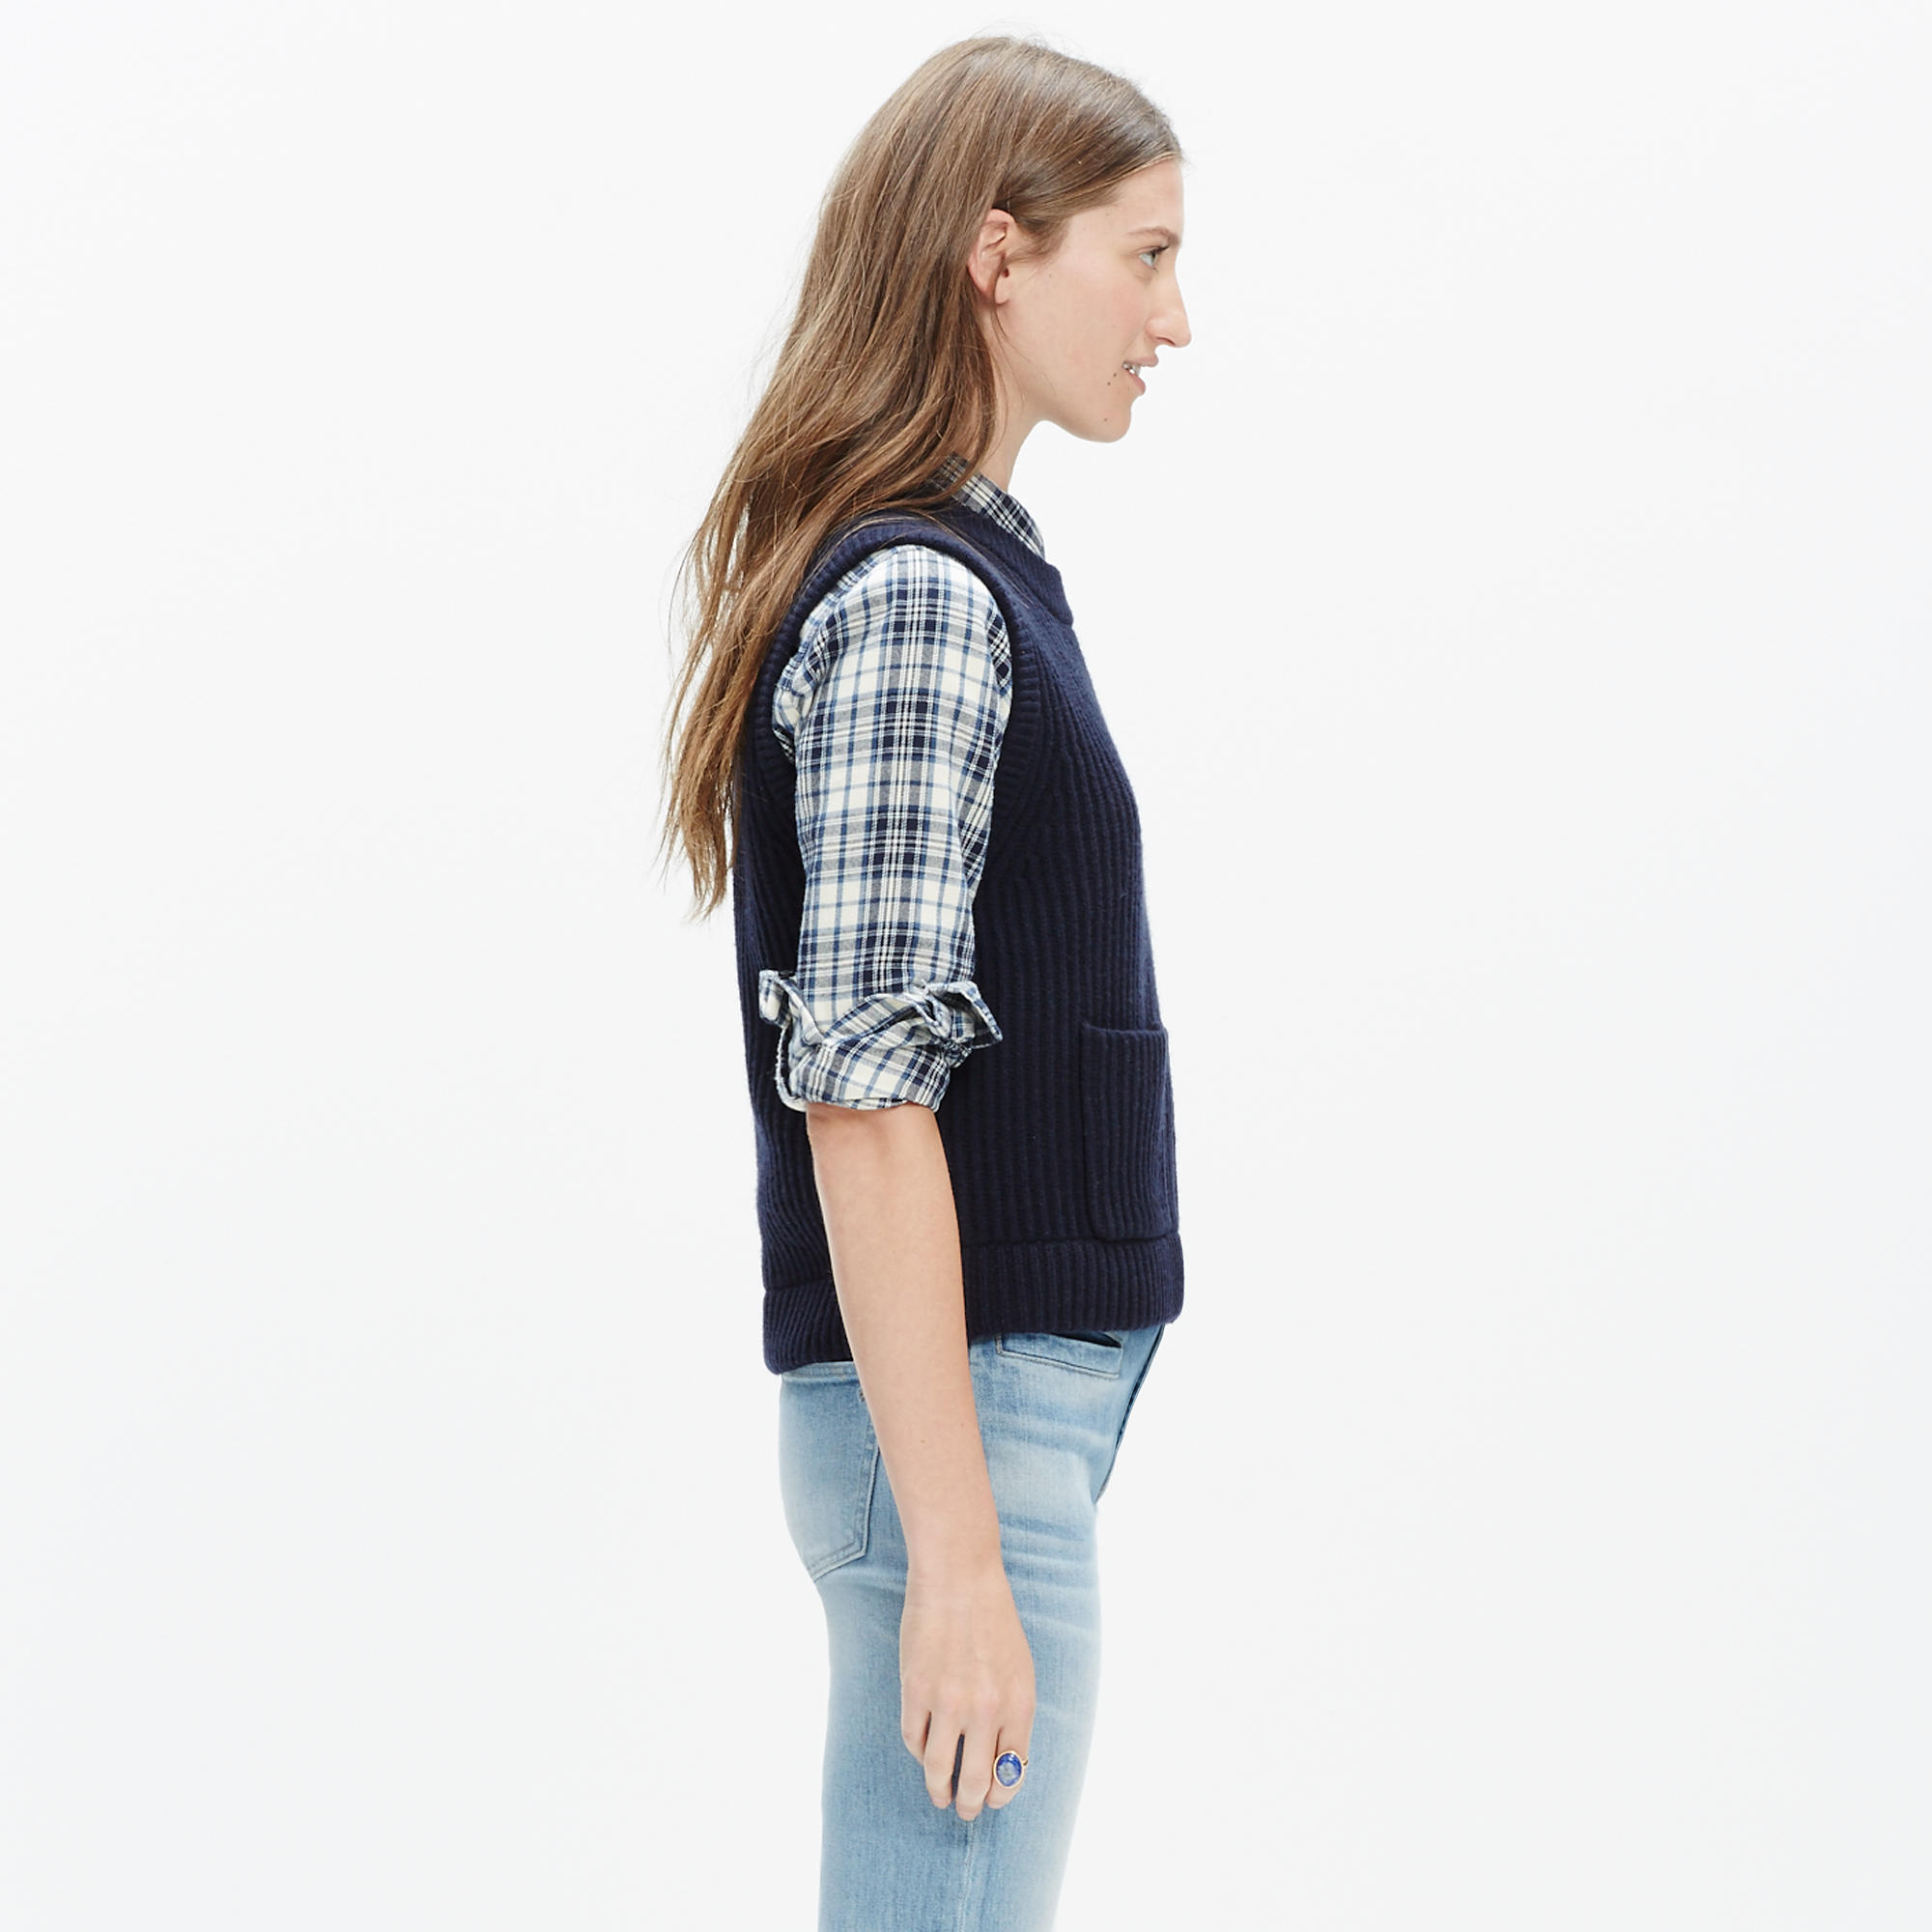 Merino Ribbed Sweater-Vest : pullovers | Madewell